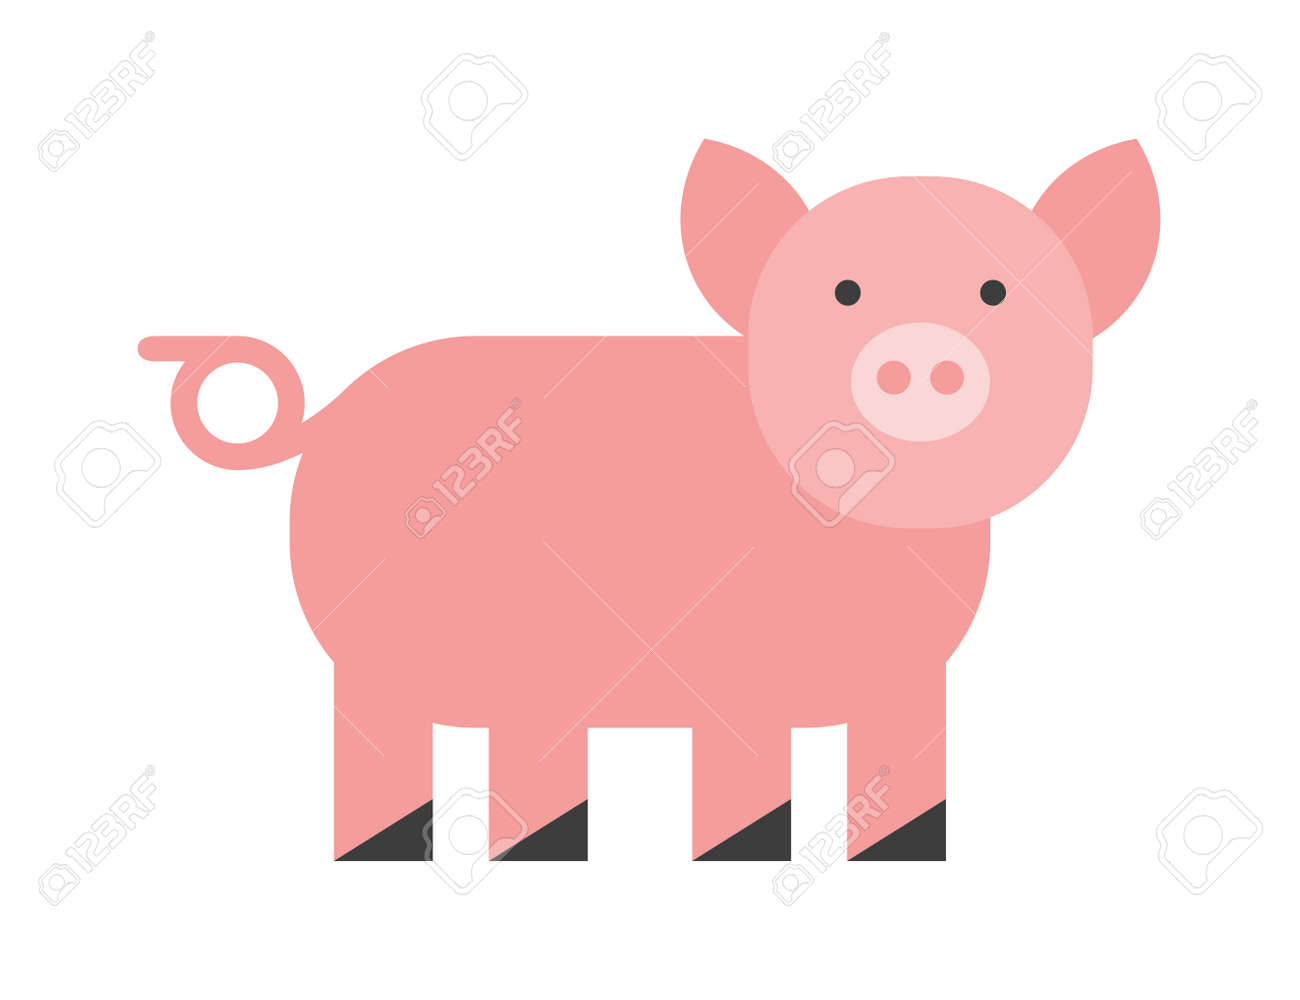 cute pig cheerful pig funny pig vector domestic isolated mammal rh 123rf com pig vectorize logo pig vector outline